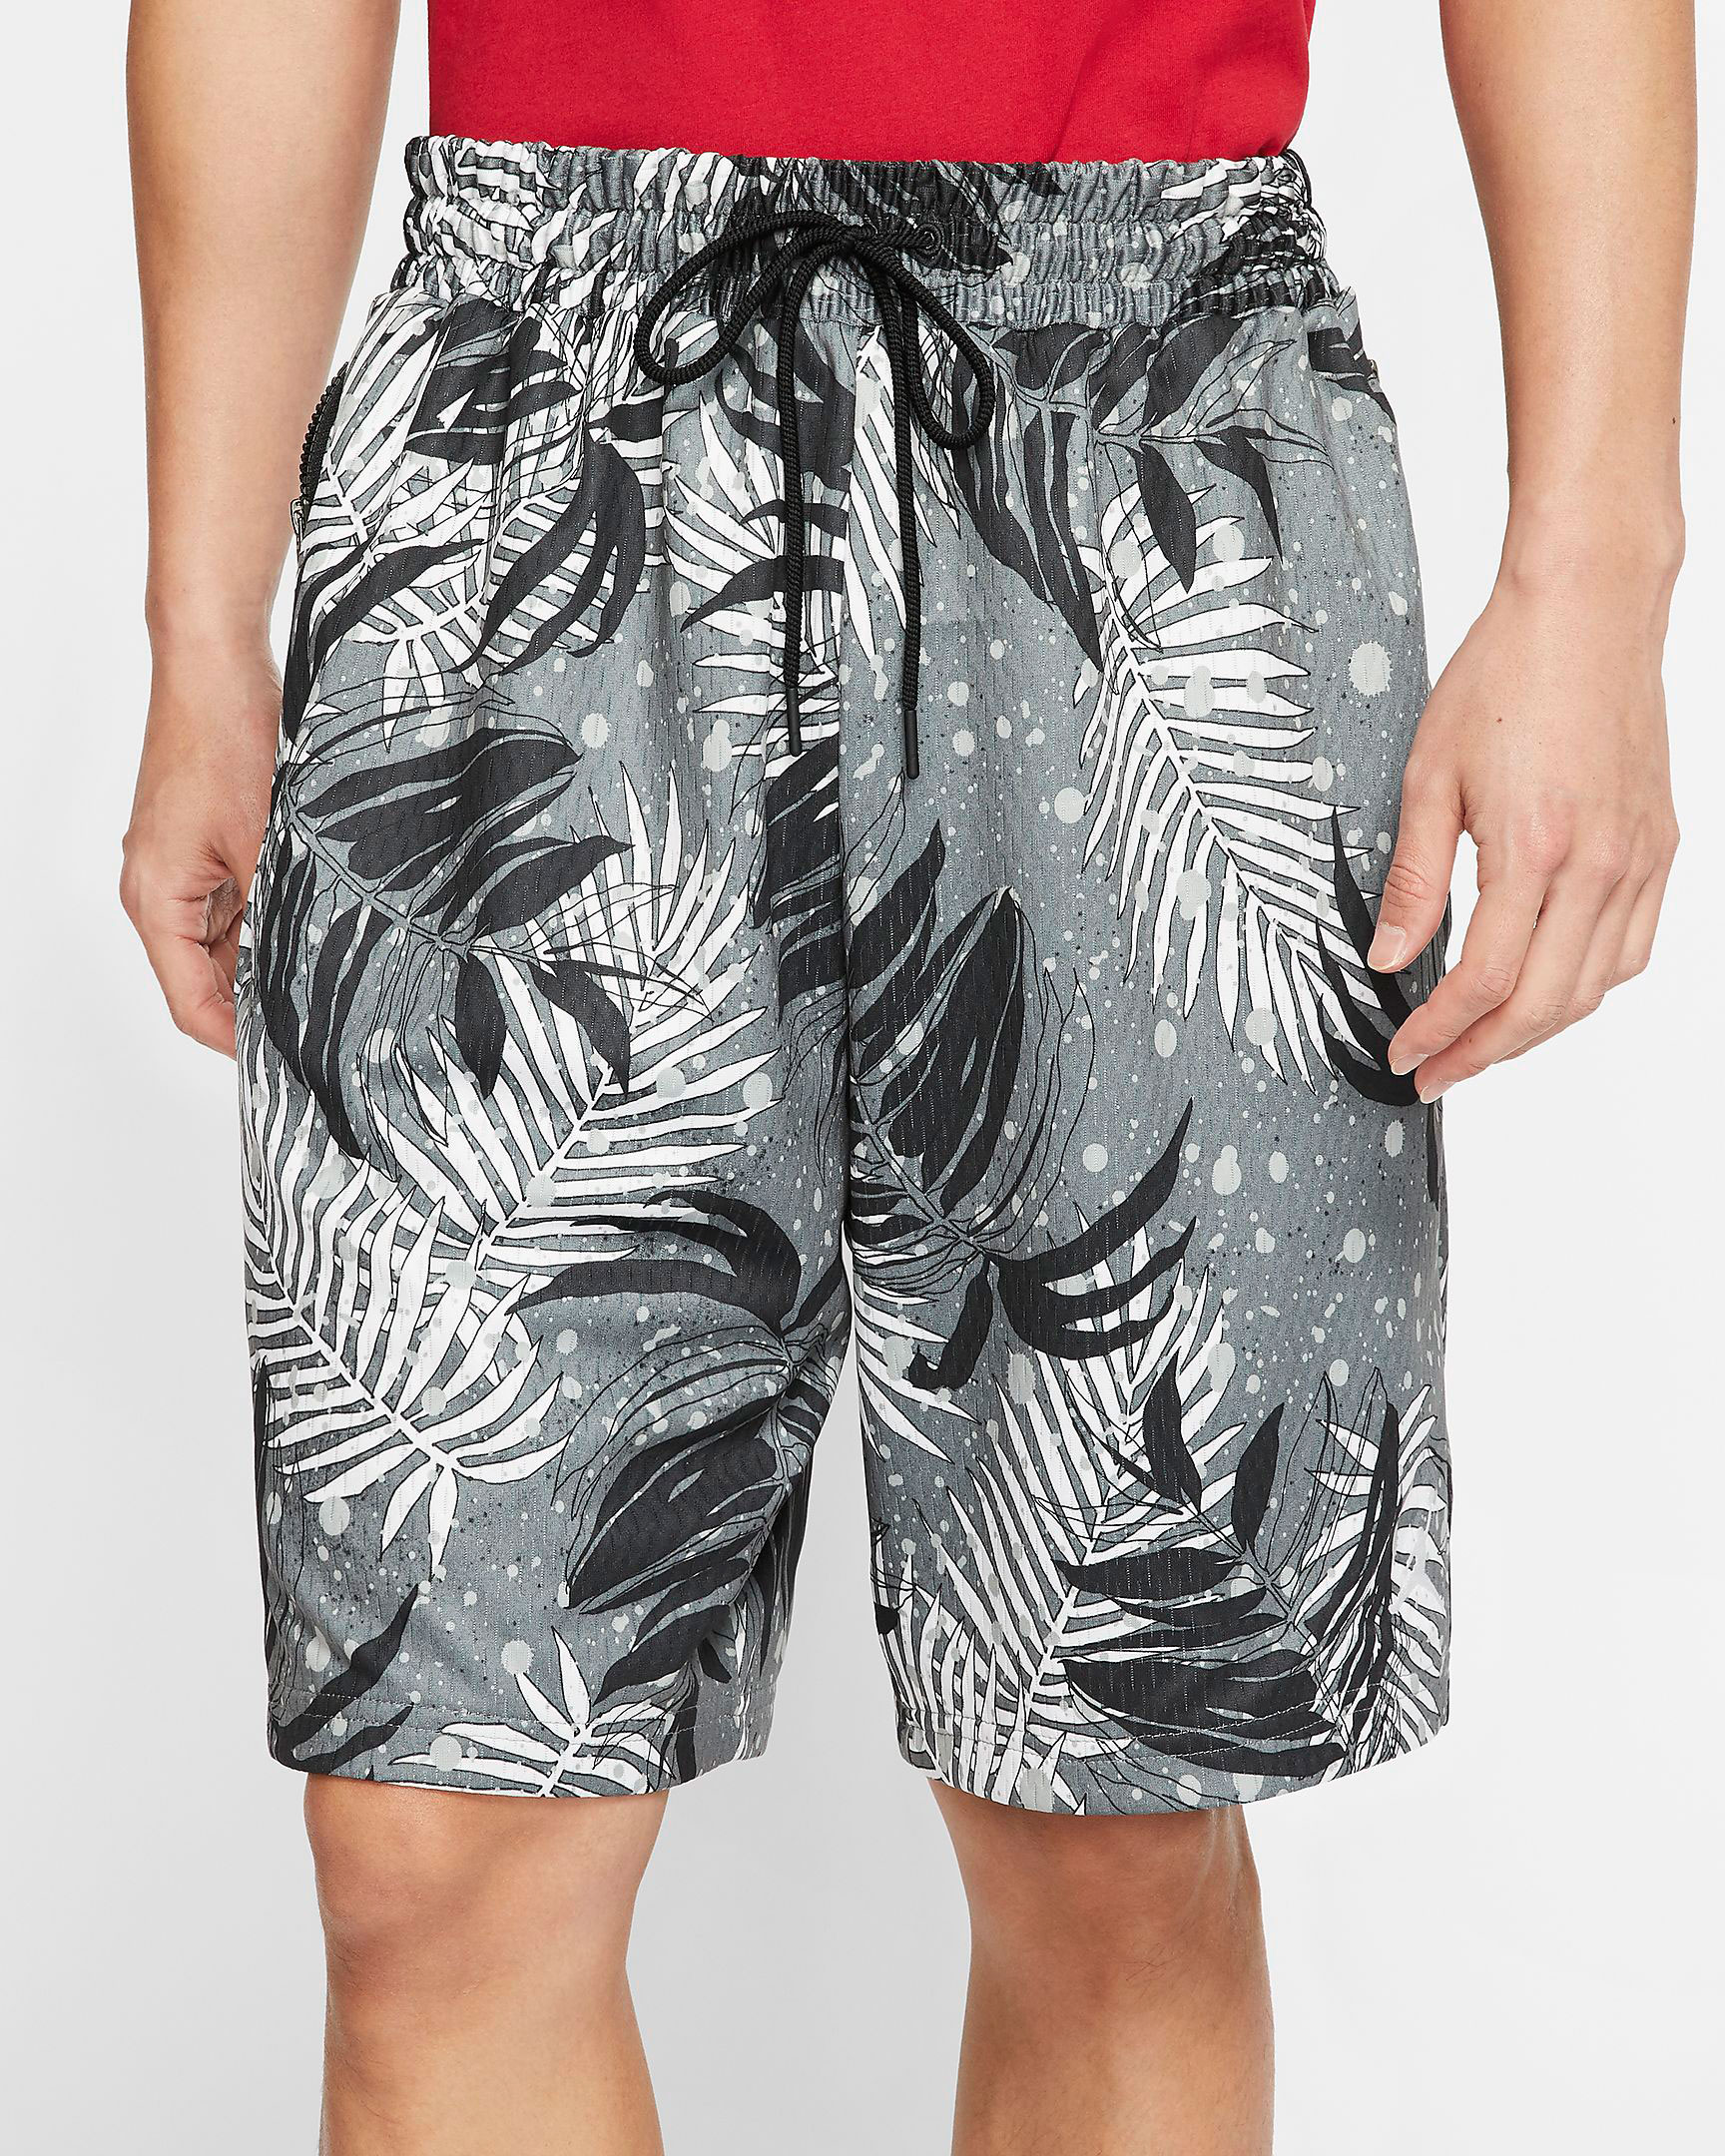 jordan-poolside-palm-tree-shorts-grey-black